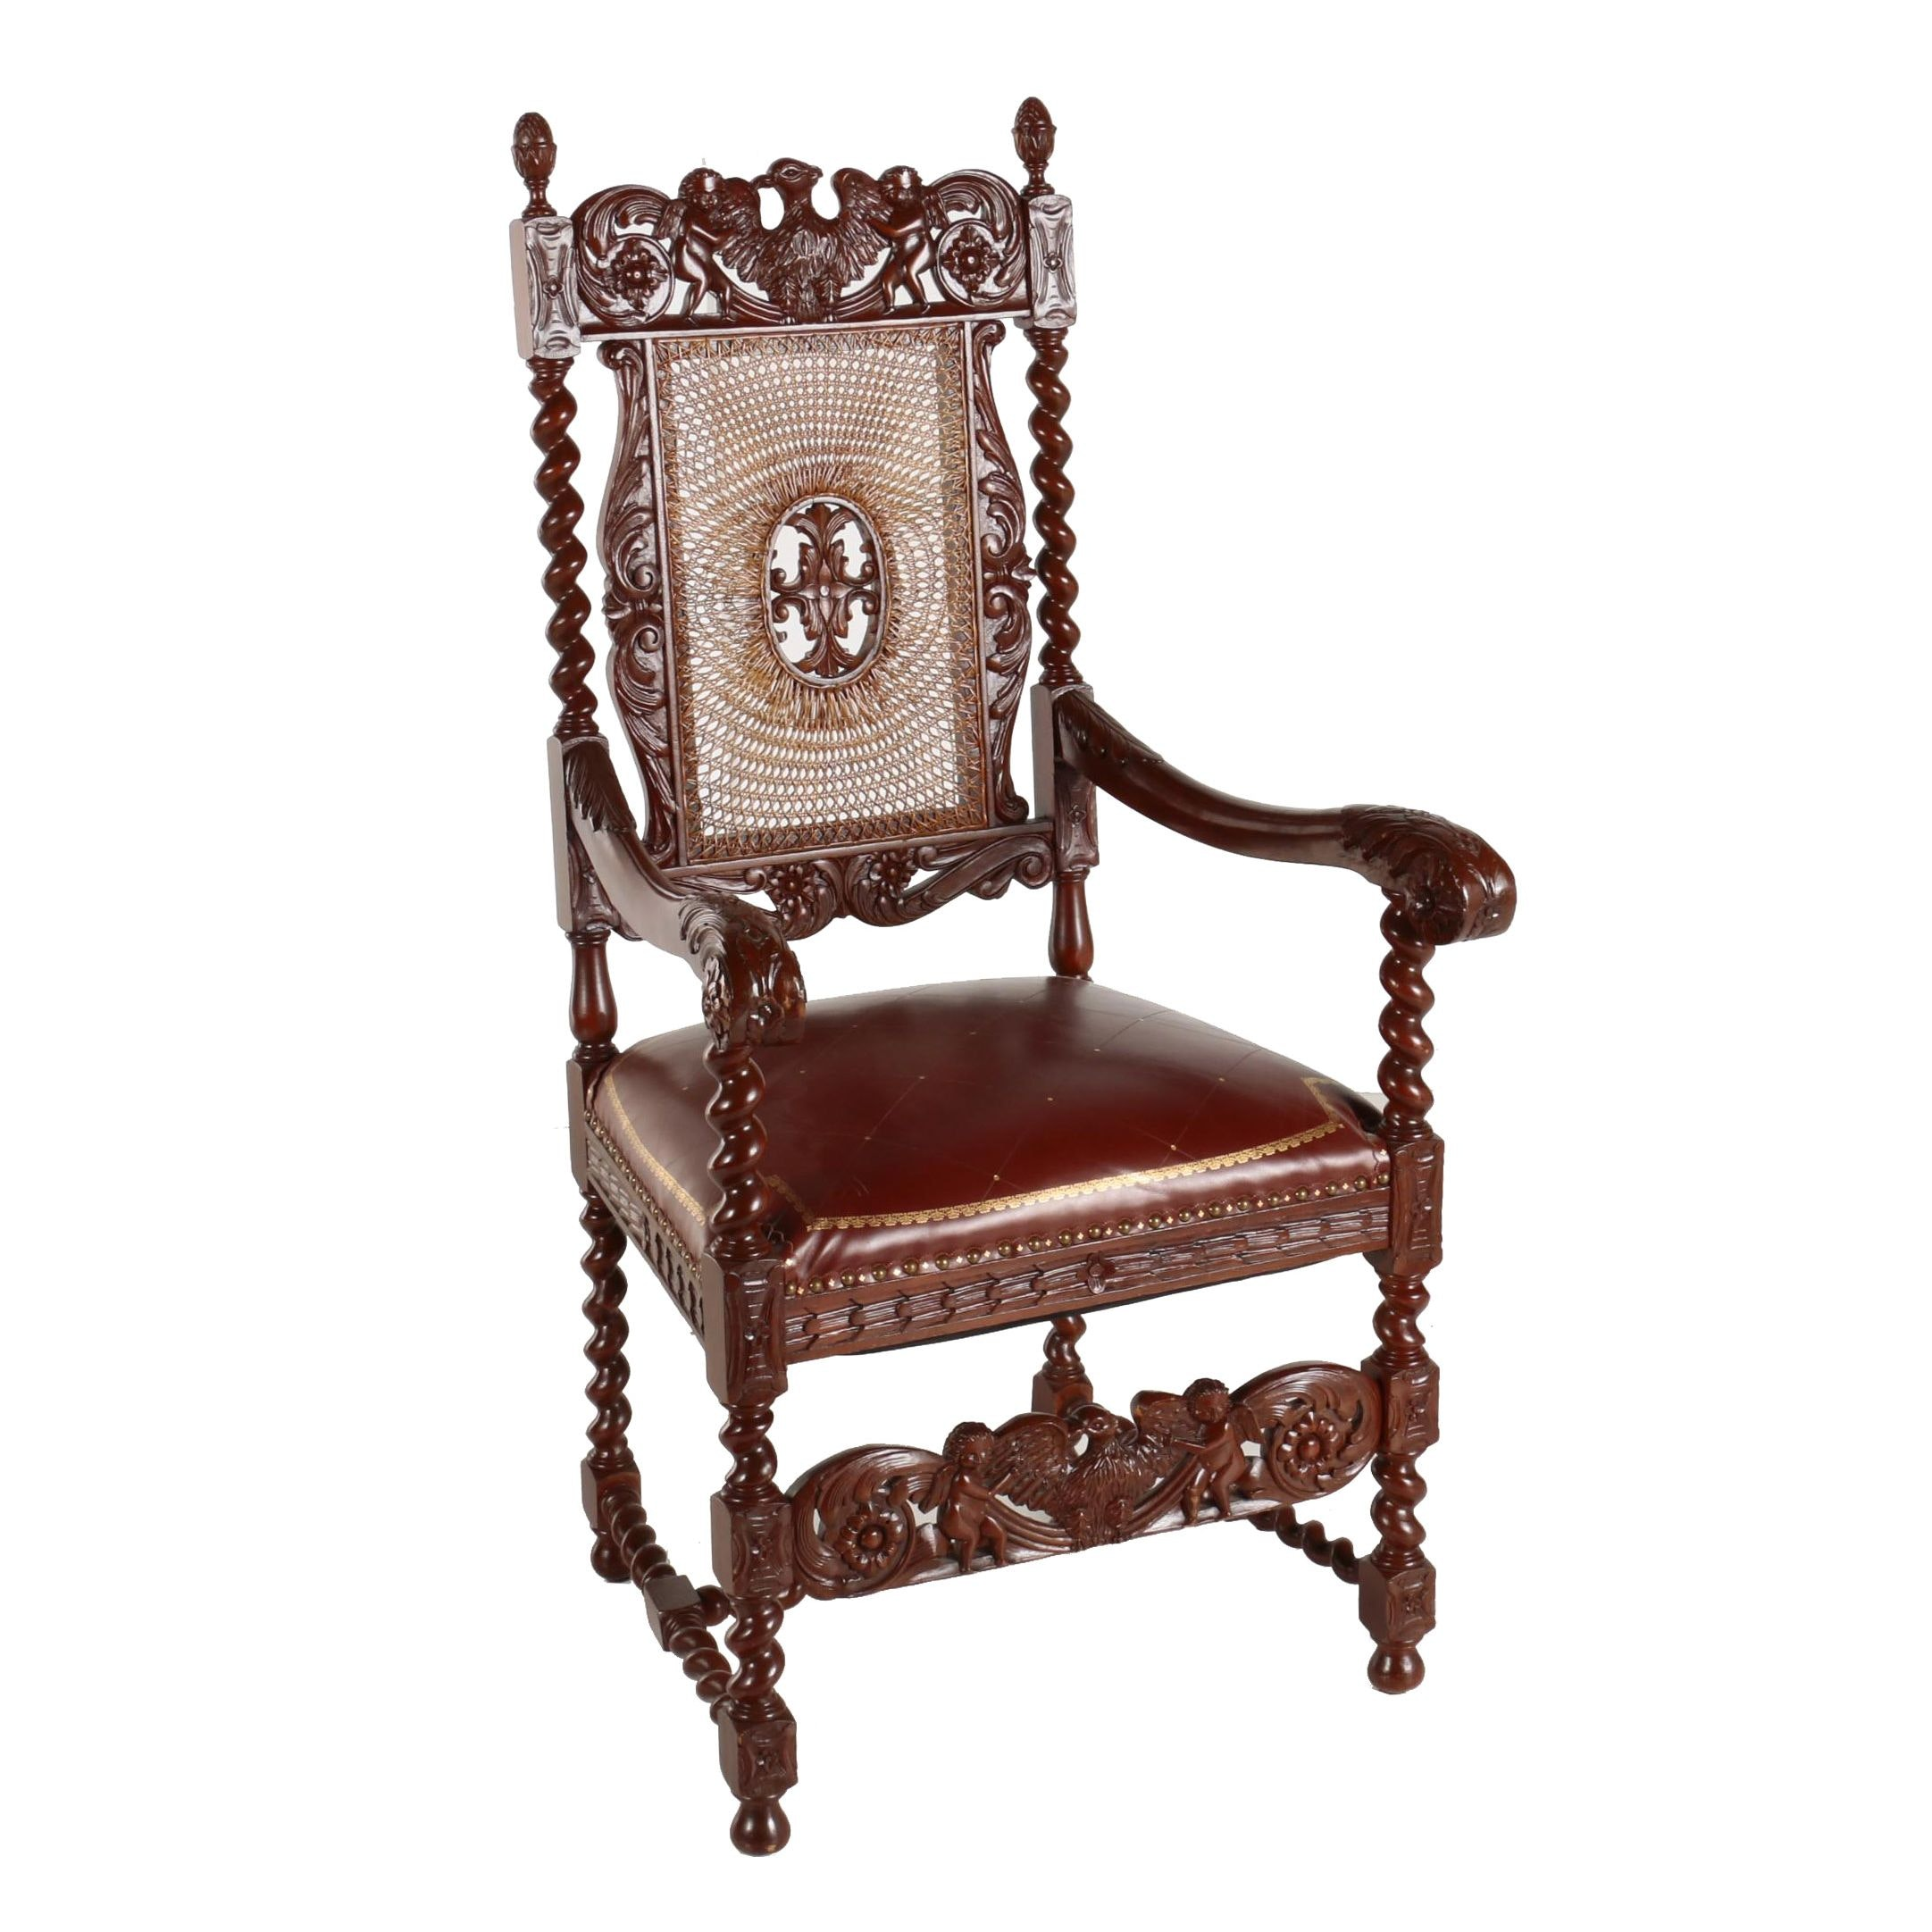 Jacobean Revival Walnut-Stained Armchair, 20th Century